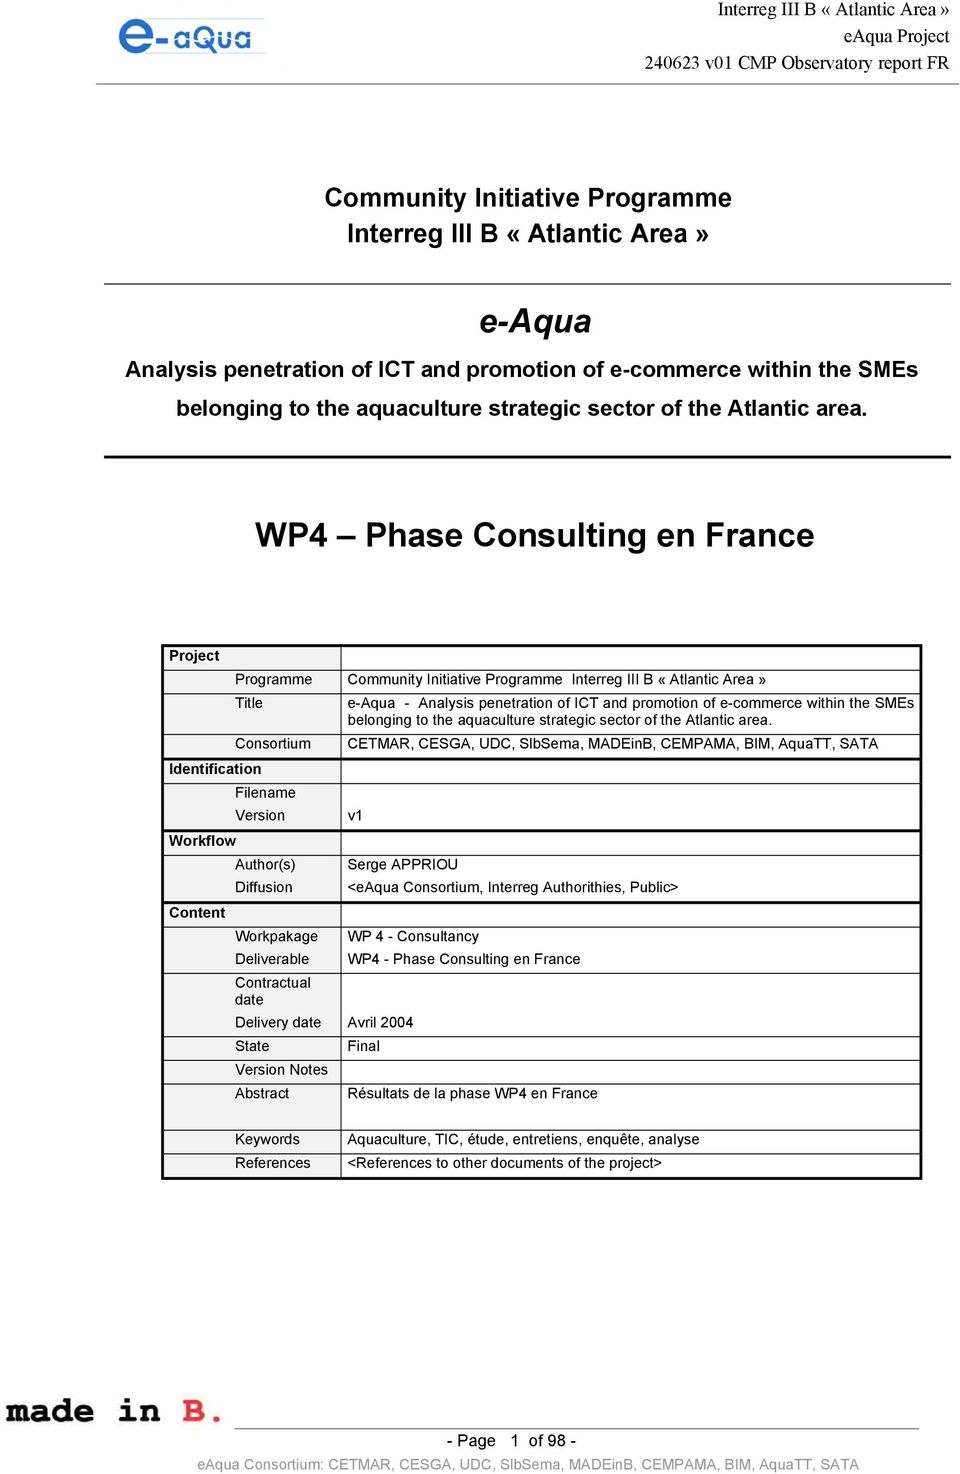 WP4 Phase Consulting en France Project Programme Community Initiative Programme Interreg III B «Atlantic Area» Title Identification Workflow Content Consortium Filename Version Author(s) Diffusion